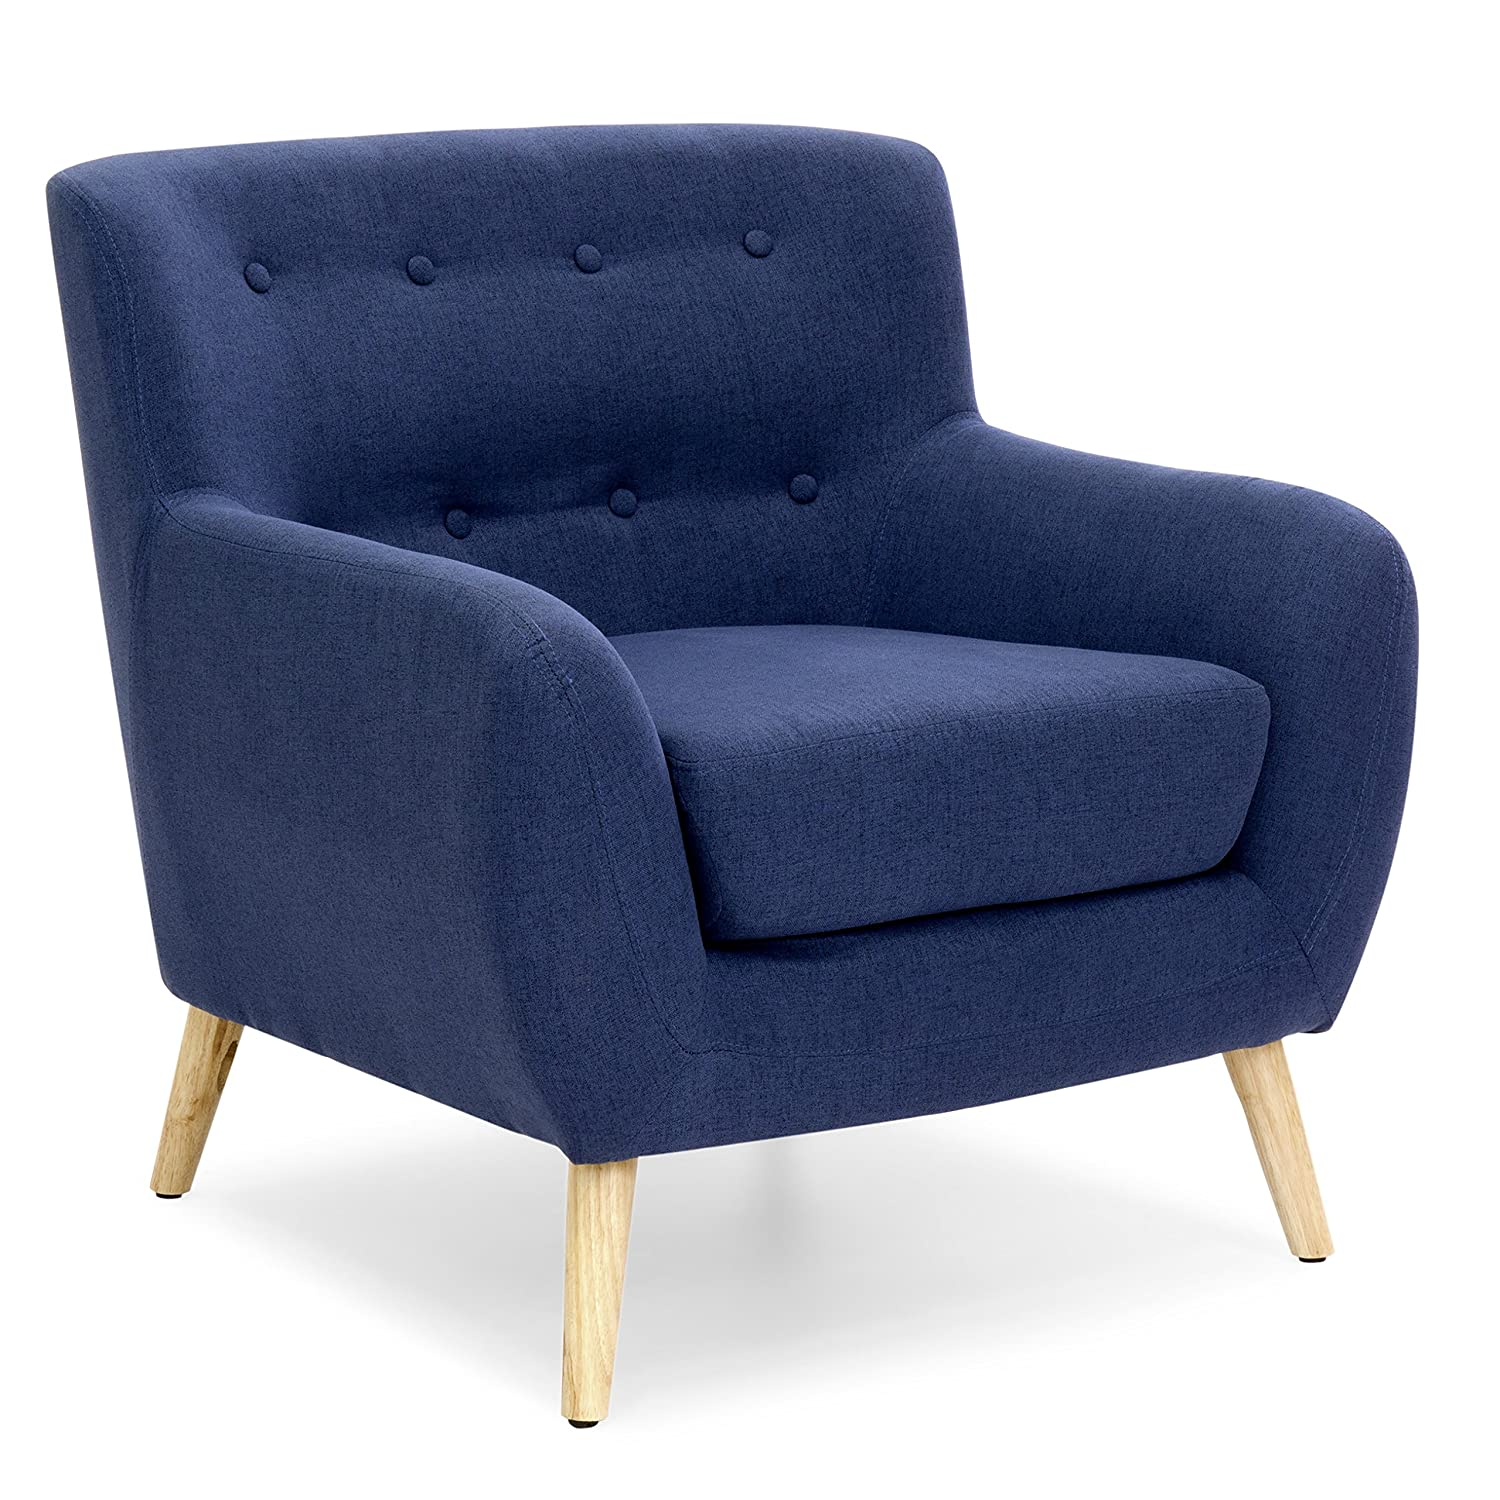 Blue Modern Accent Chairs.Best Choice Products Linen Upholstered Modern Mid Century Tufted Accent Chair For Living Room Bedroom Dark Blue